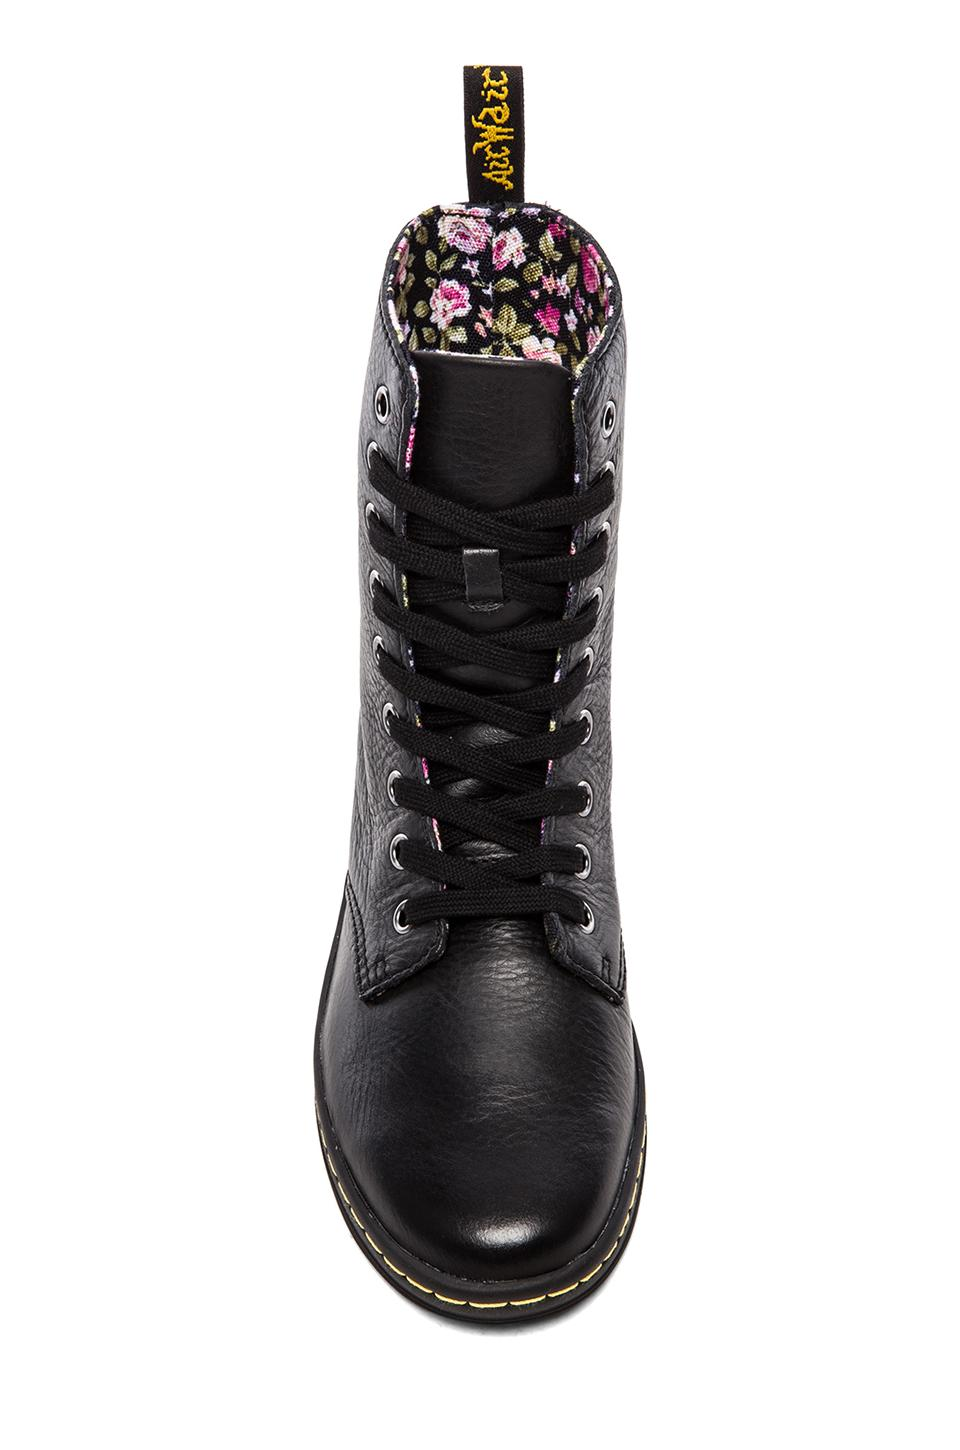 Dr. Martens Stratford 9-Eye Fold Down Boot in Black